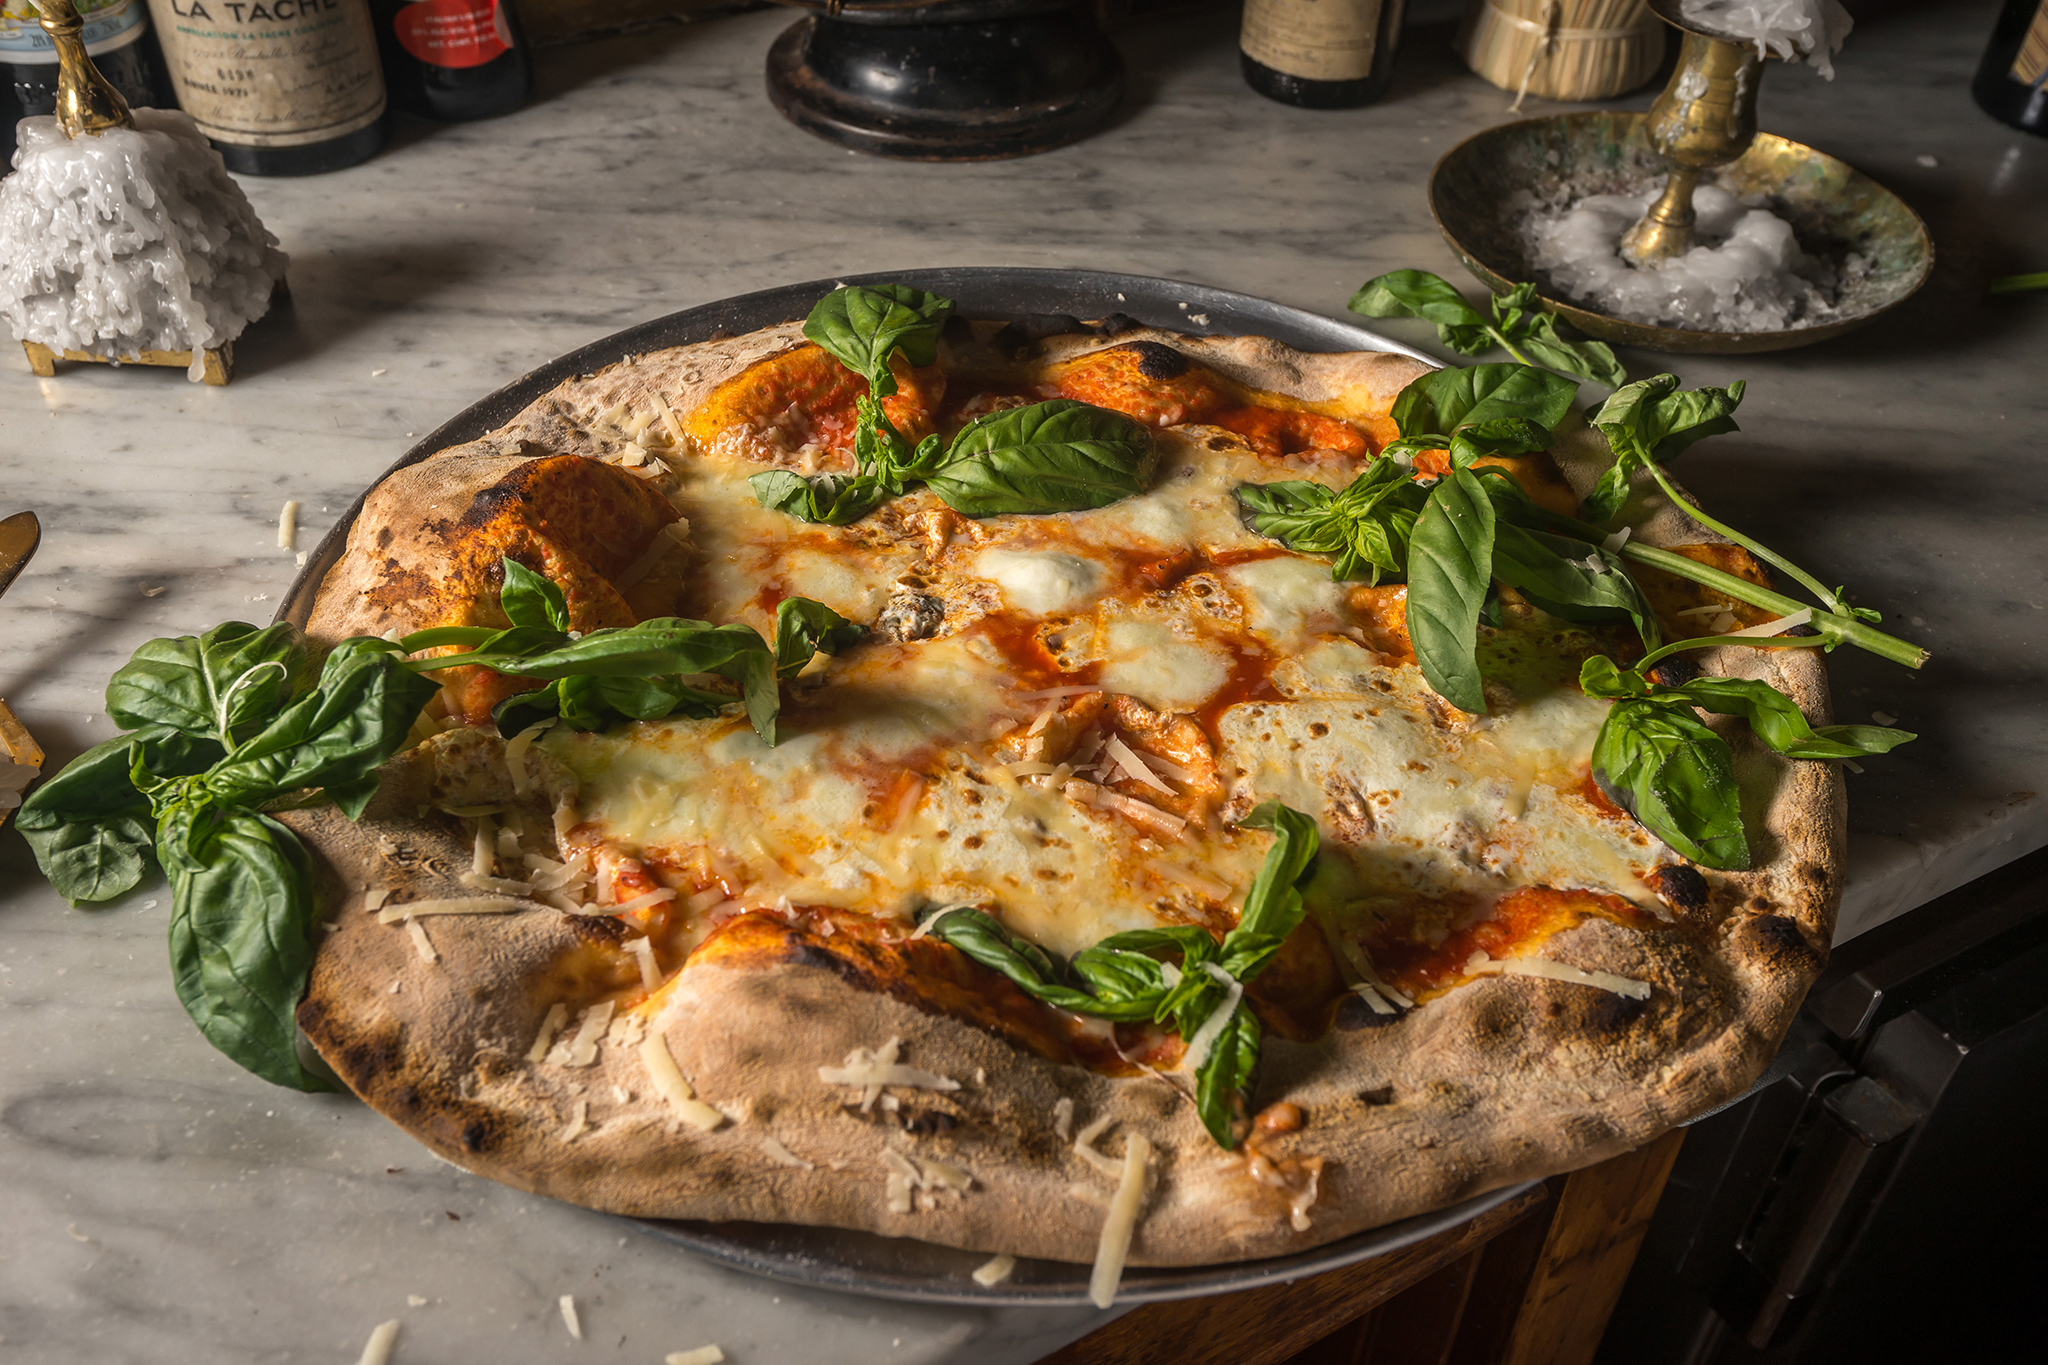 The people's picks for the 25 best pizzas in New York